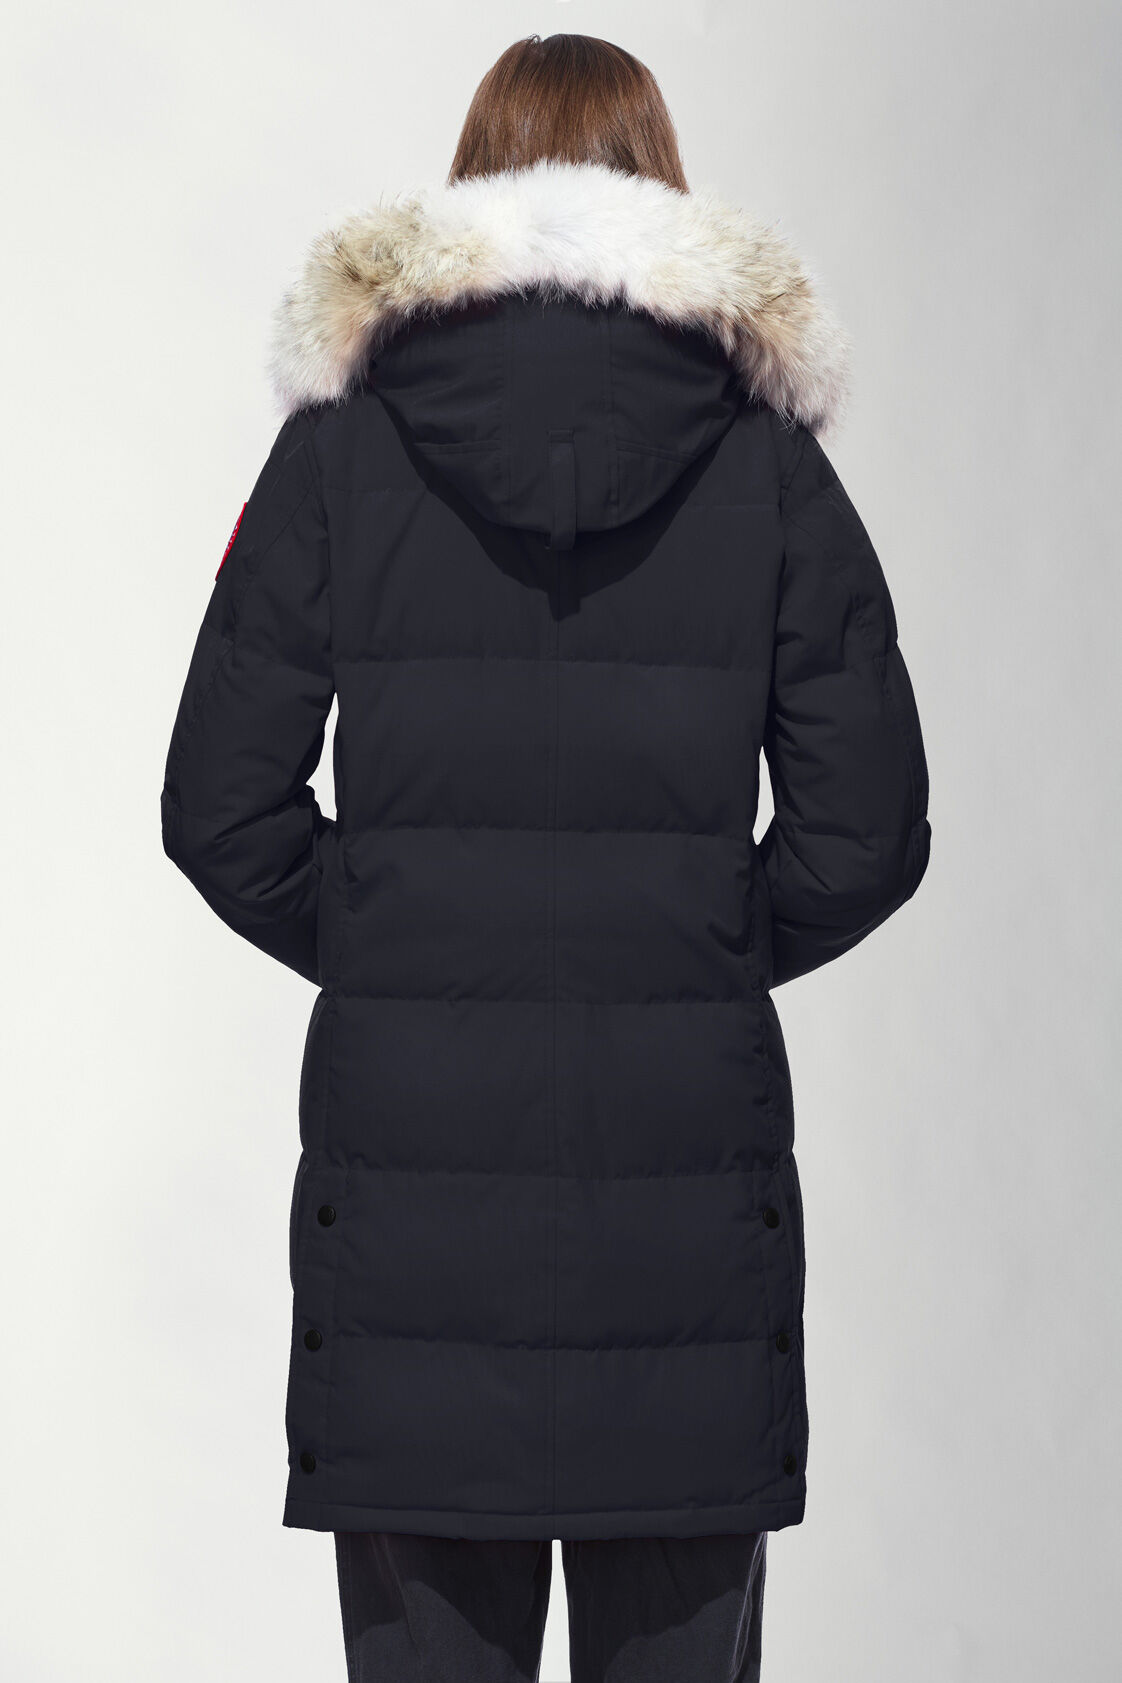 canada goose xs or s